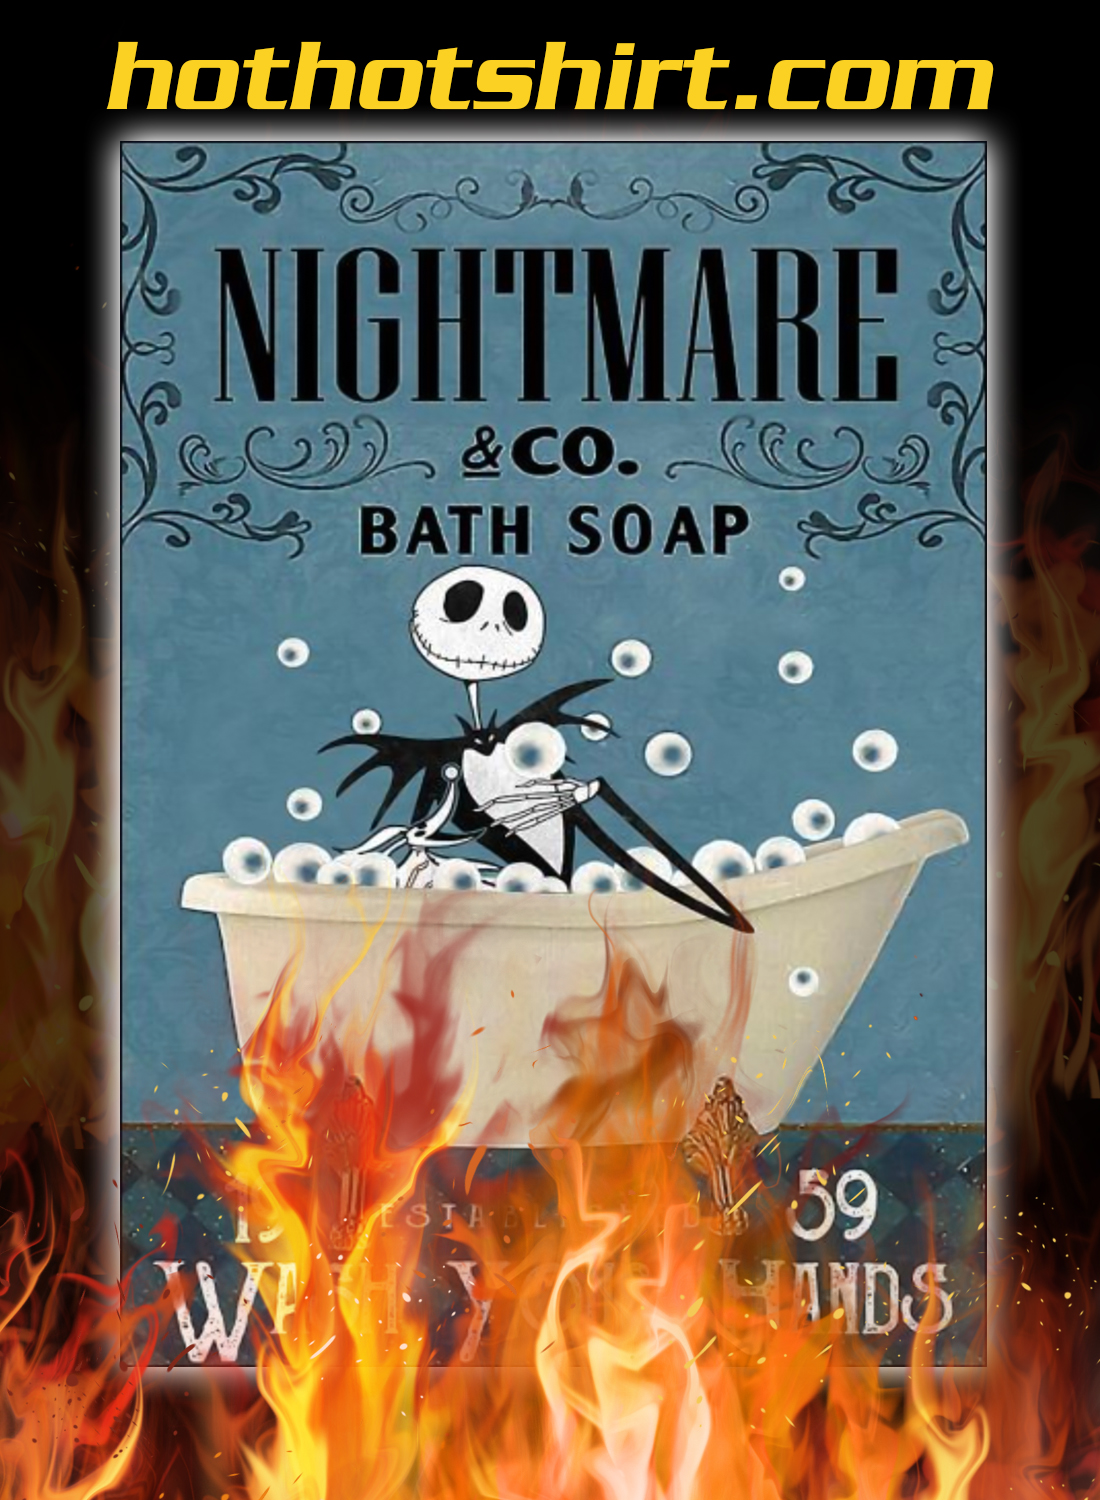 Nightmare Co Bath Soap Wash Your Hands Poster - A4